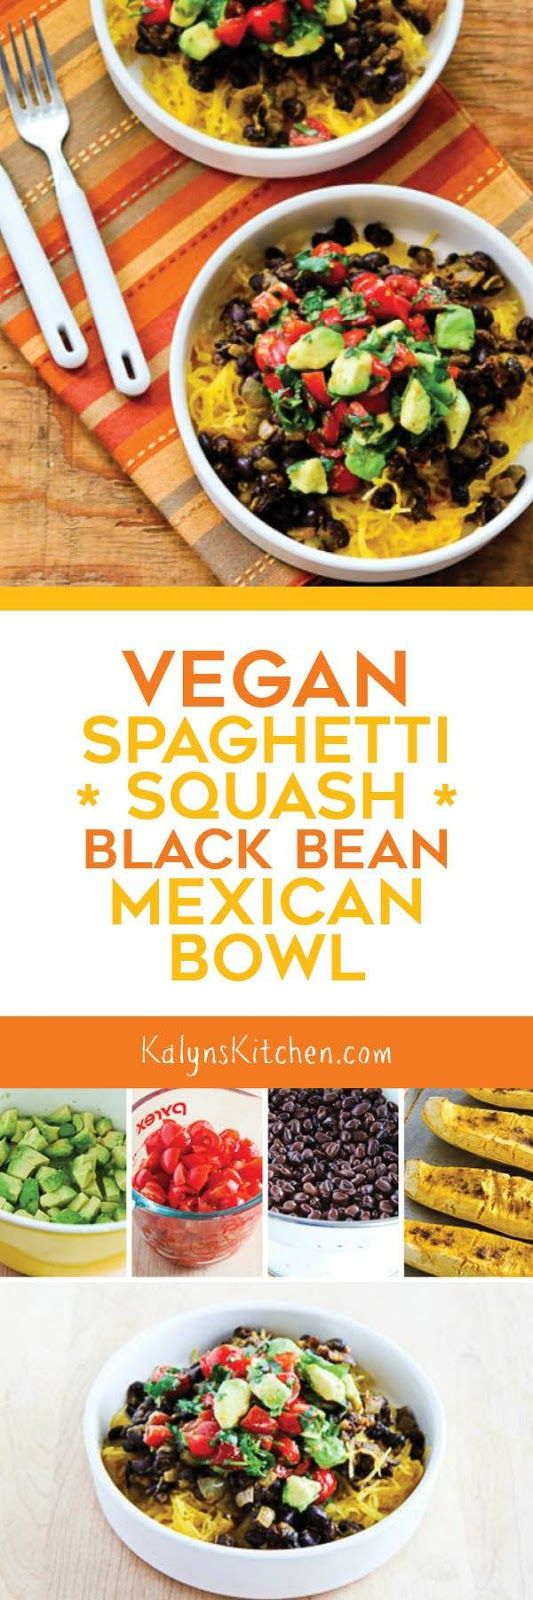 This Vegan Spaghetti Squash Black Bean Mexican Bowl is delicious and easy to make. This is a perfect Meatless Monday dinner that's also gluten-free, low-glycemic, dairy-free, and South Beach Diet friendly! [found on KalynsKitchen.com]